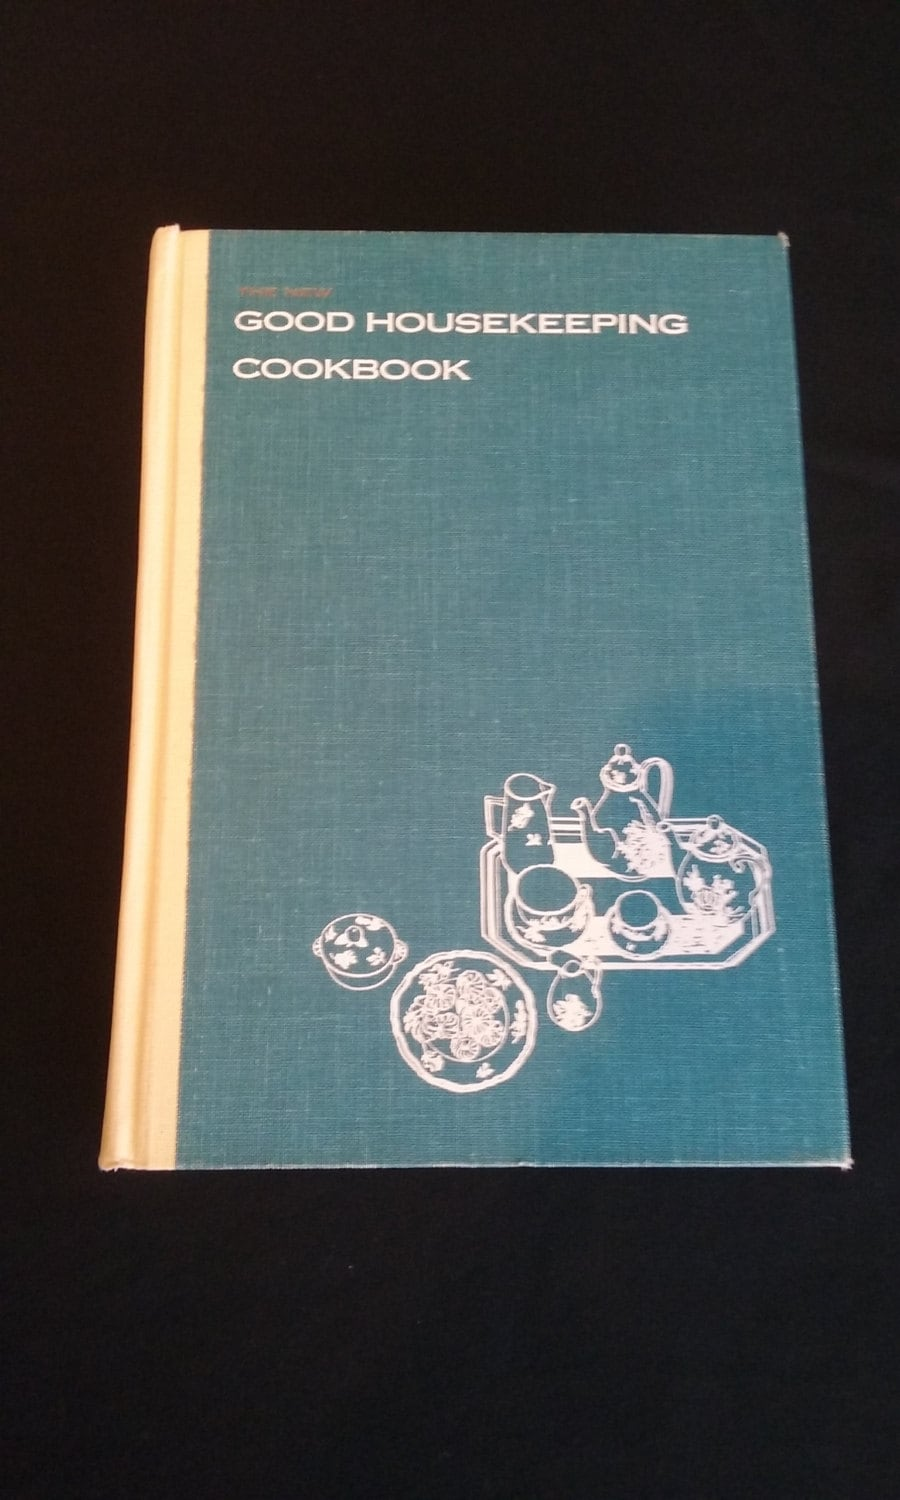 1963 Vintage The New Good Housekeeping Cookbook American Classic Hardcover